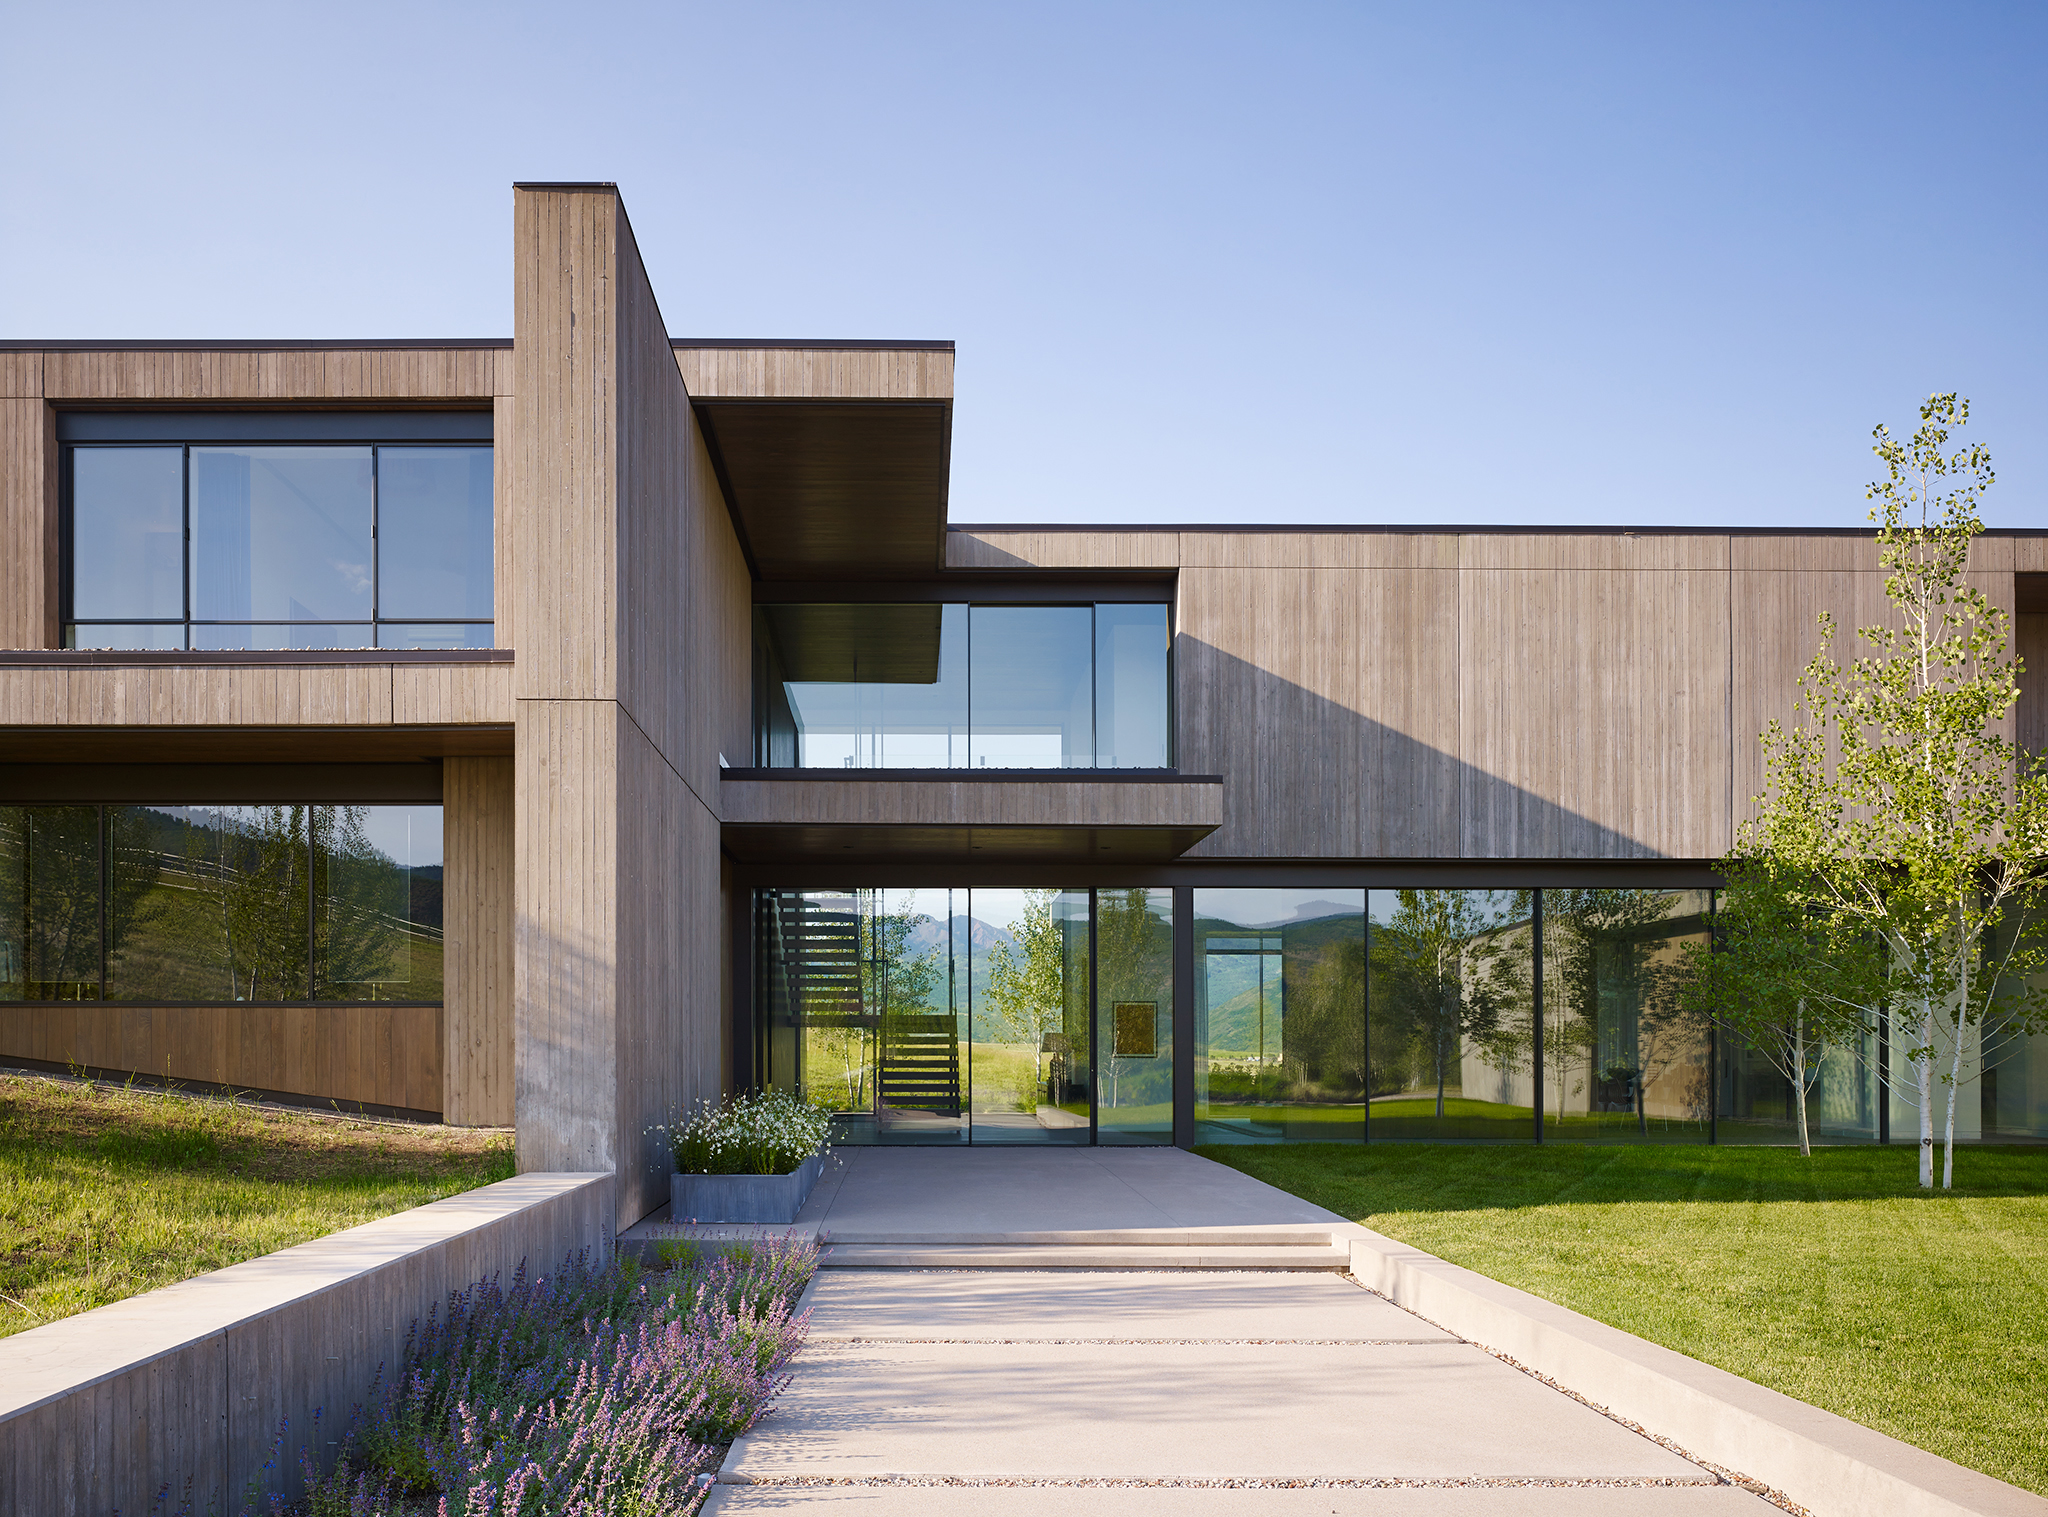 Colorado Residence by Robbins Architecture - American Design & Architect - Image 21